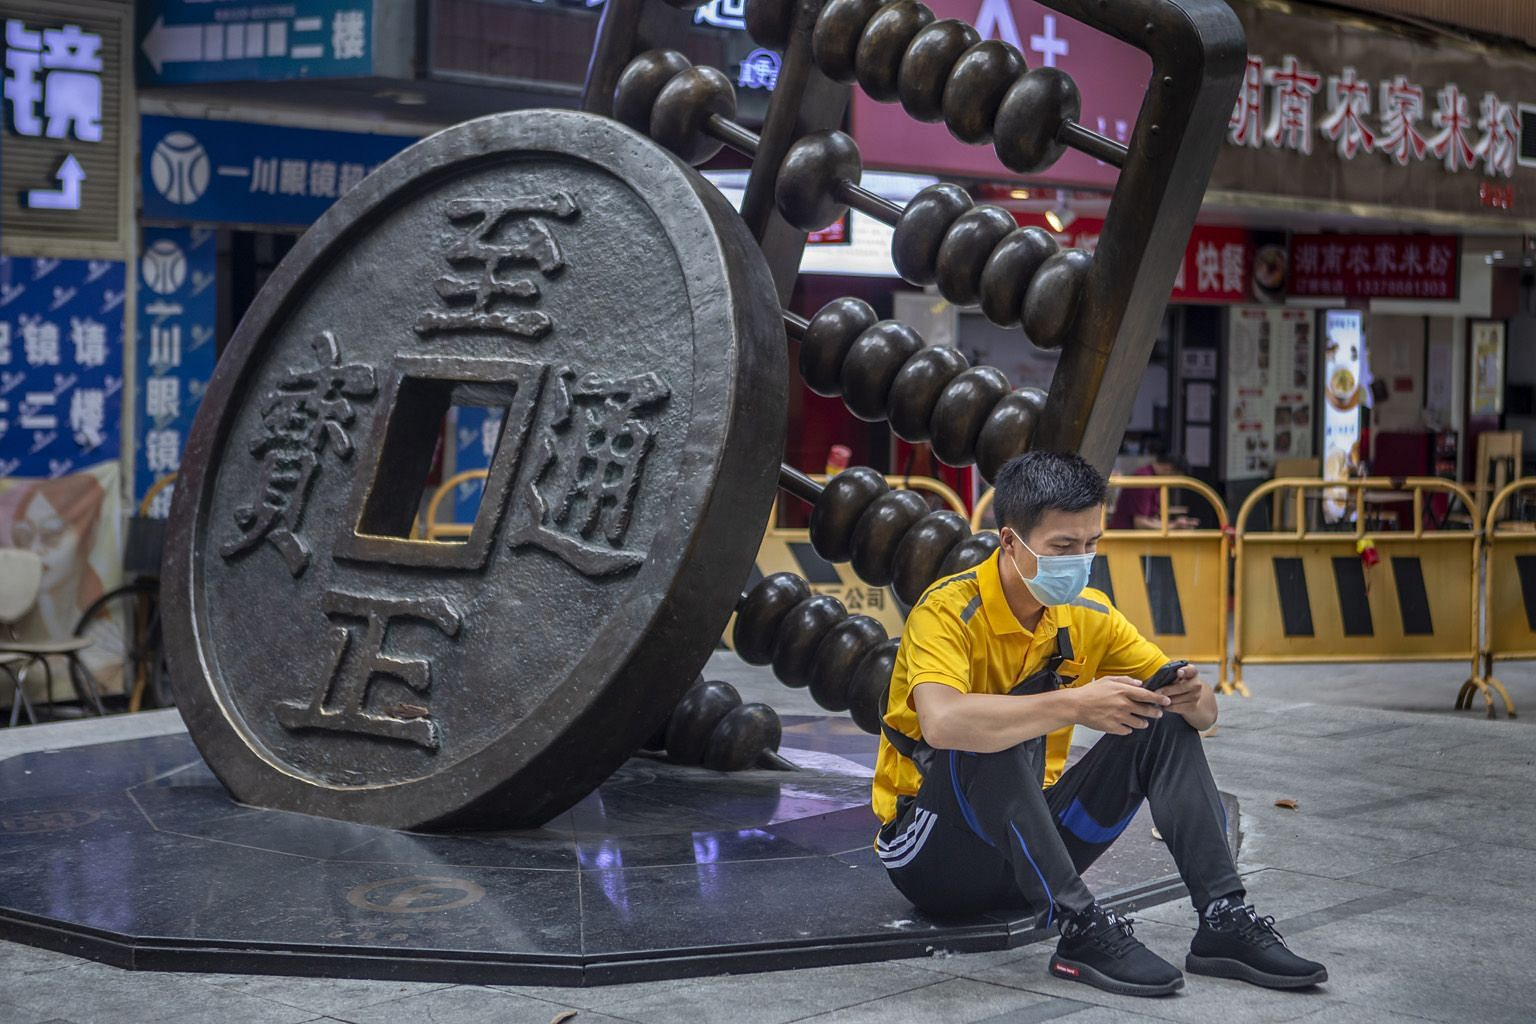 A sculpture depicting the Chinese yuan and abacus in Guangzhou in China's Guangdong province. An official Chinese digital yuan is now in pilot runs to slowly start replacing the physical legal tender. If the experiment succeeds, it will become the wo